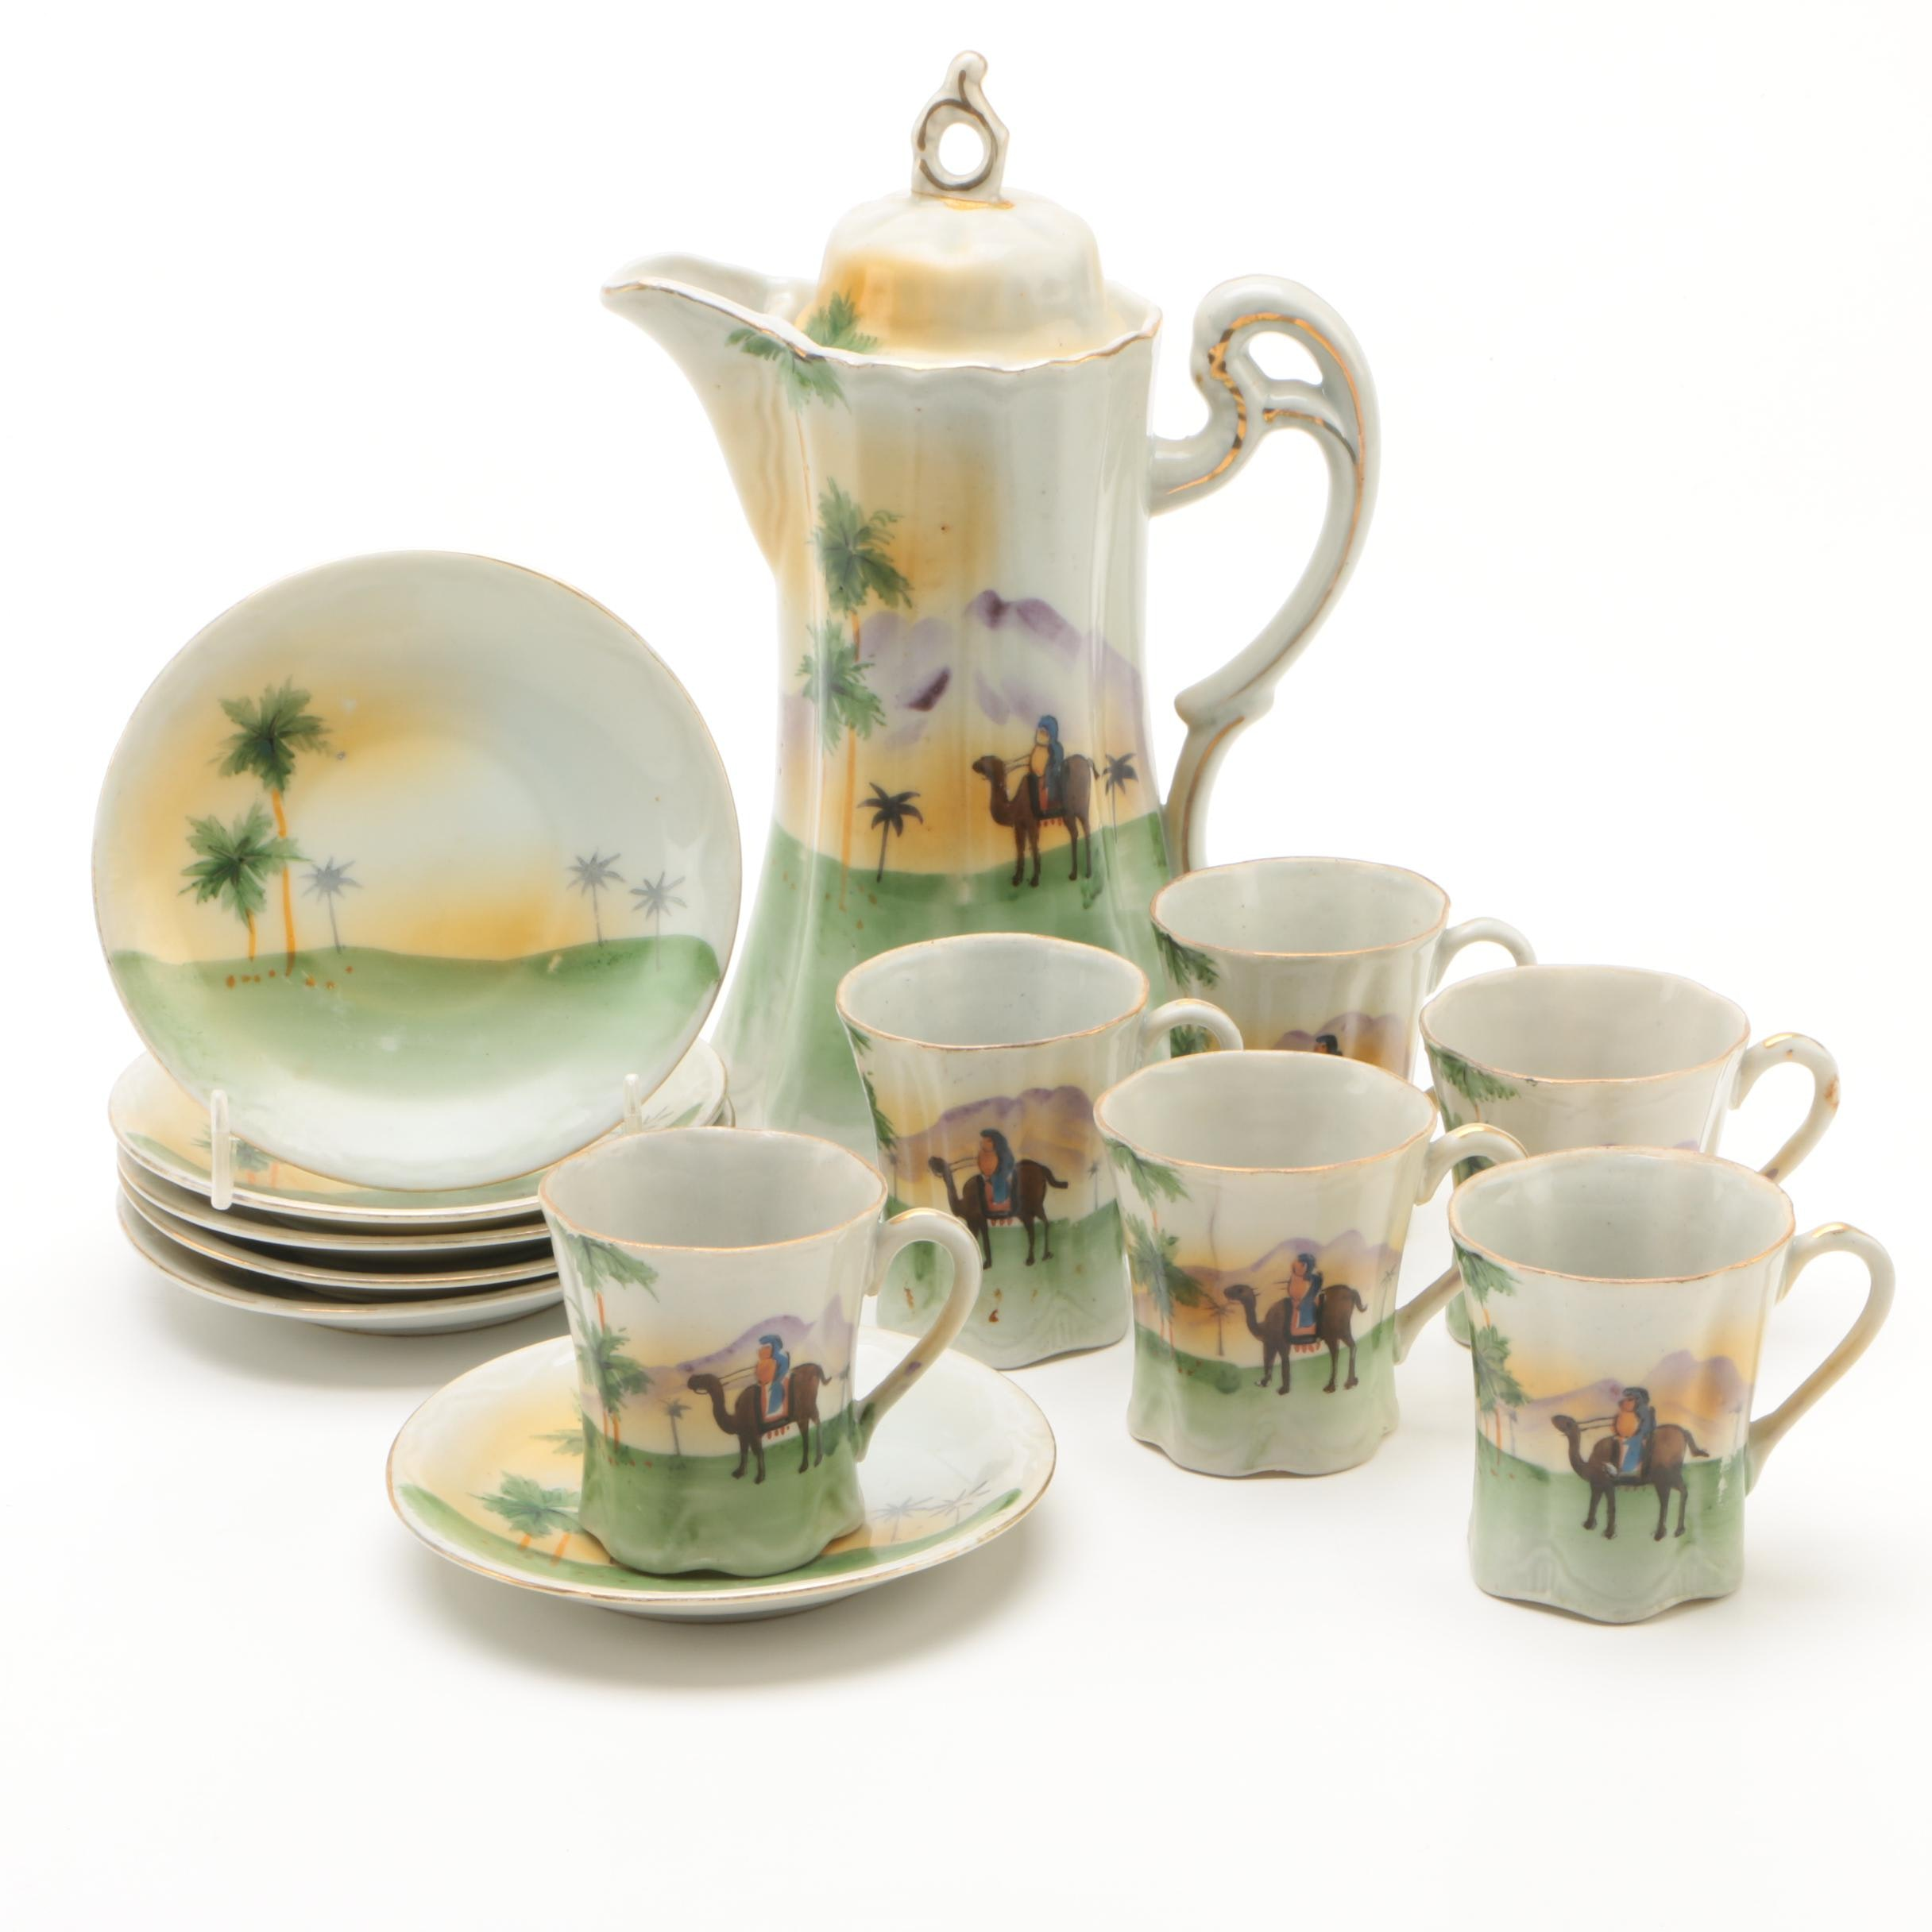 Japanese Hand-Painted Porcelain Chocolate Service